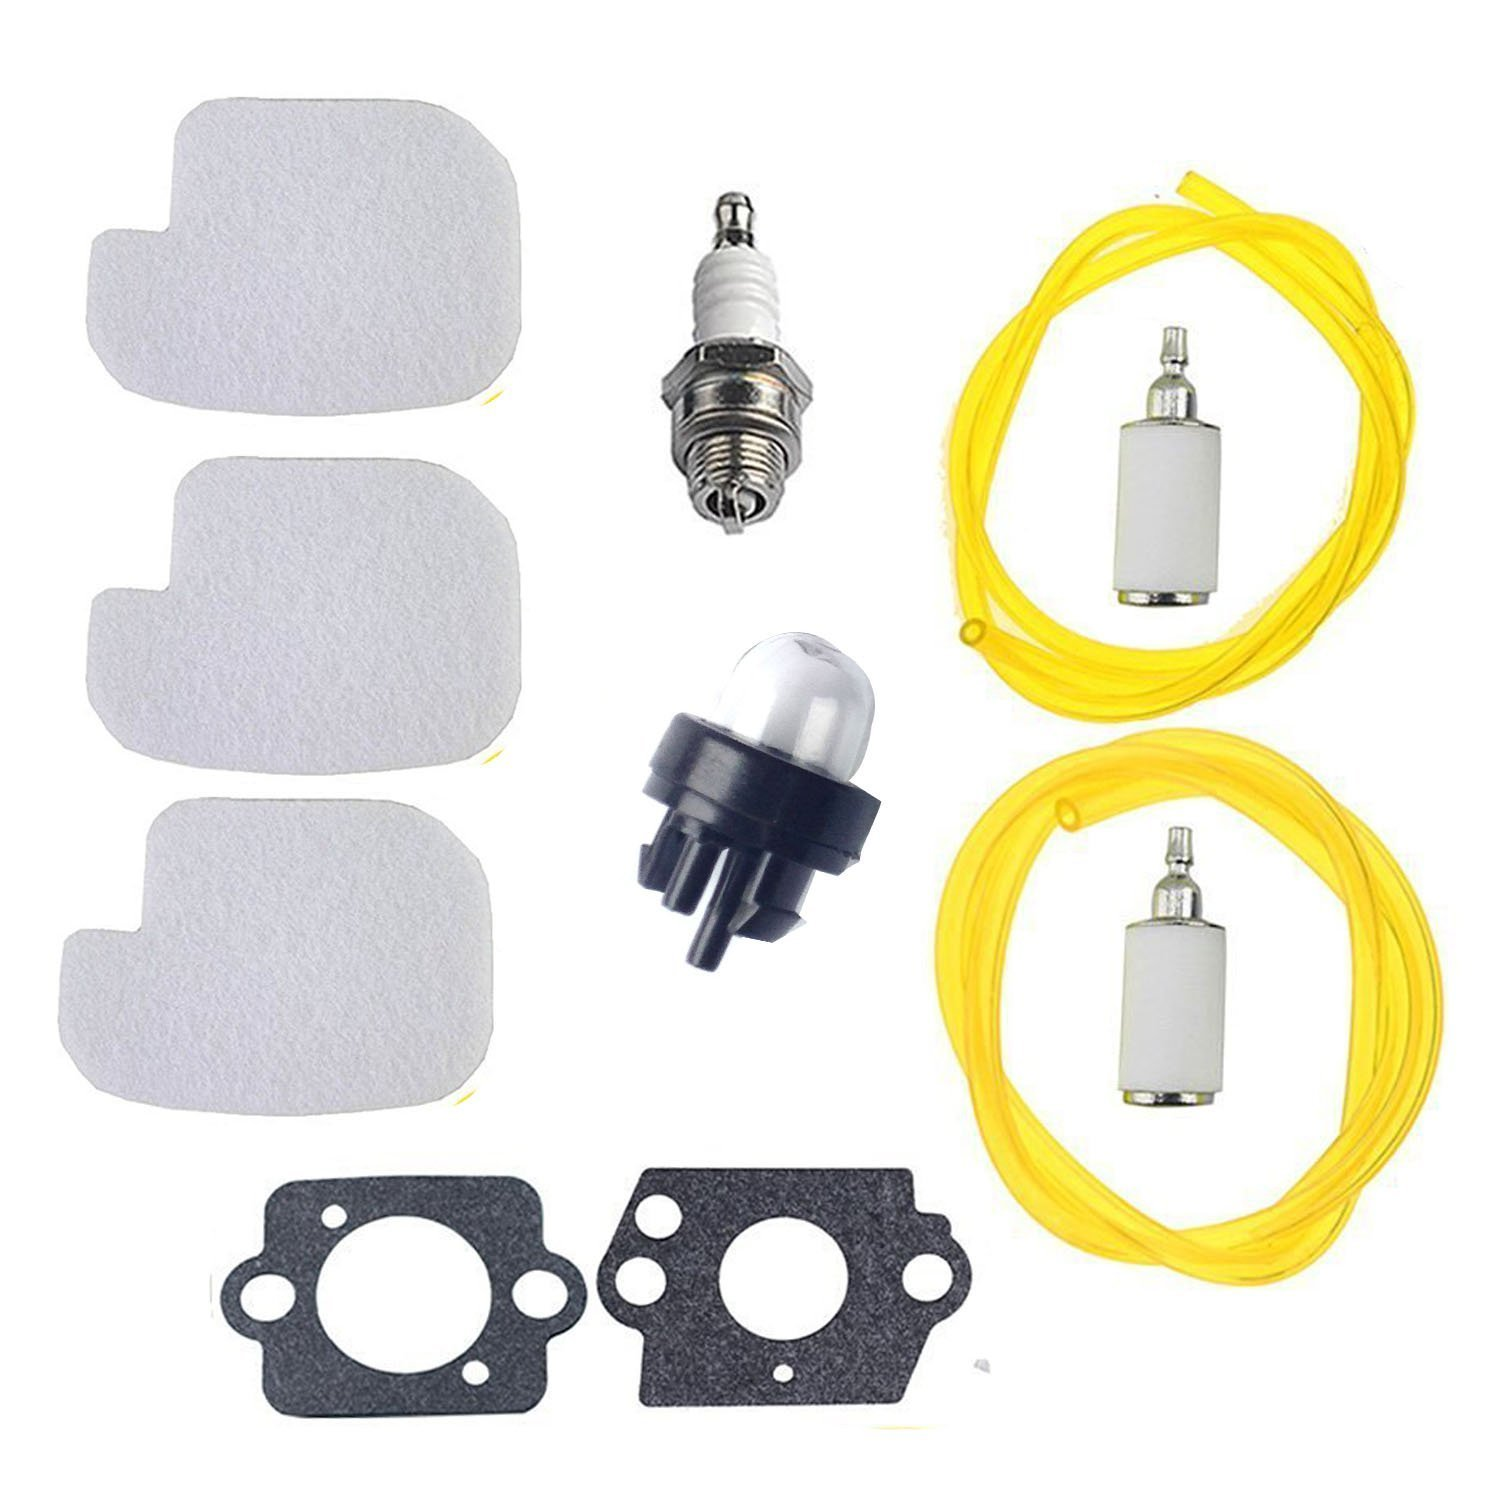 Podoy Chainsaw Parts For Poulan 530095646 530069247 Air Fuel Filter With Line Spark Plug Gasket